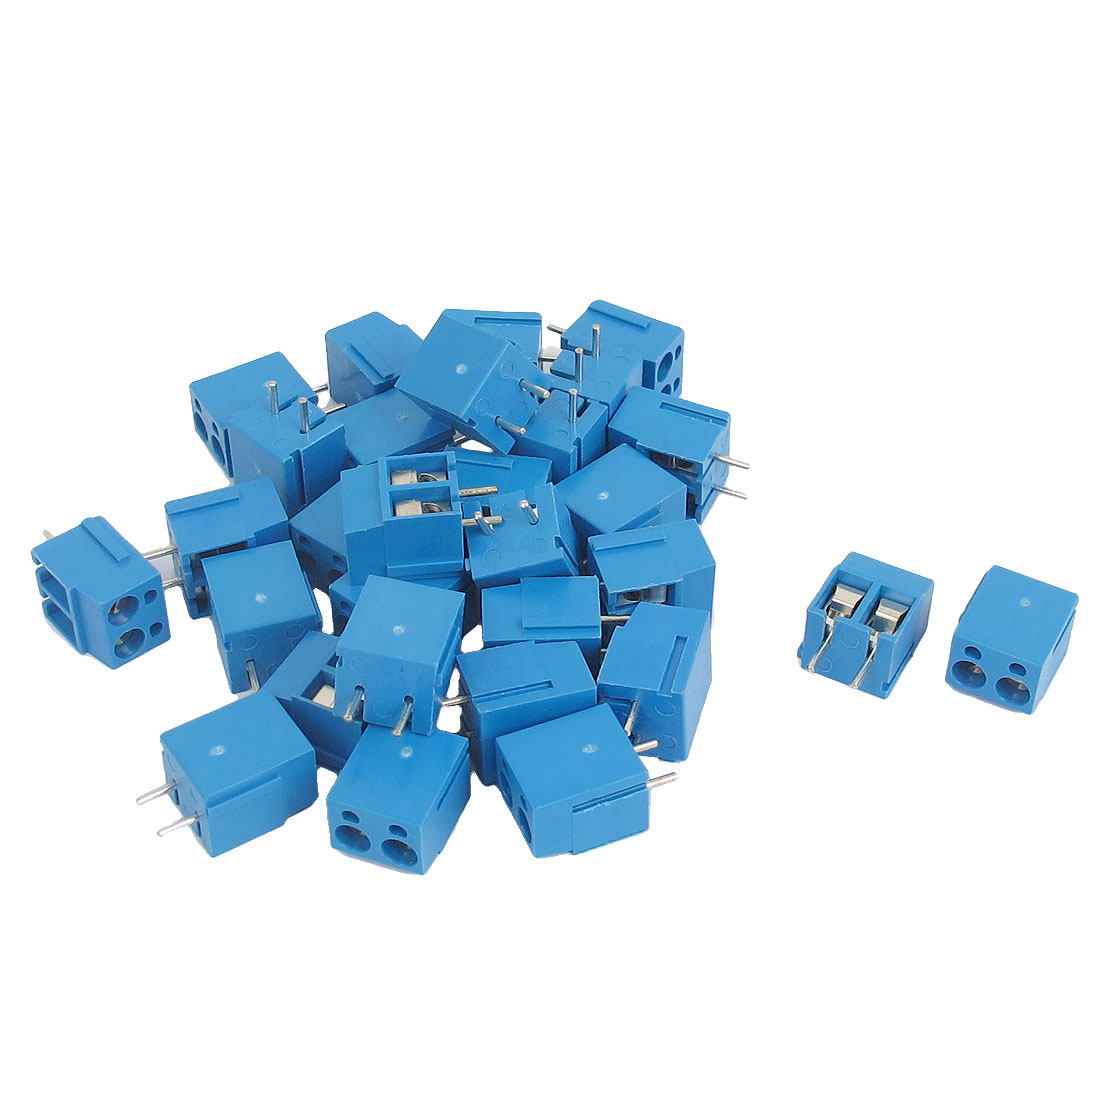 30pcs AC 300V 16A 2P 5mm Spacing Pluggable PCB Mounting Terminal Block for AWG14-22 Cable